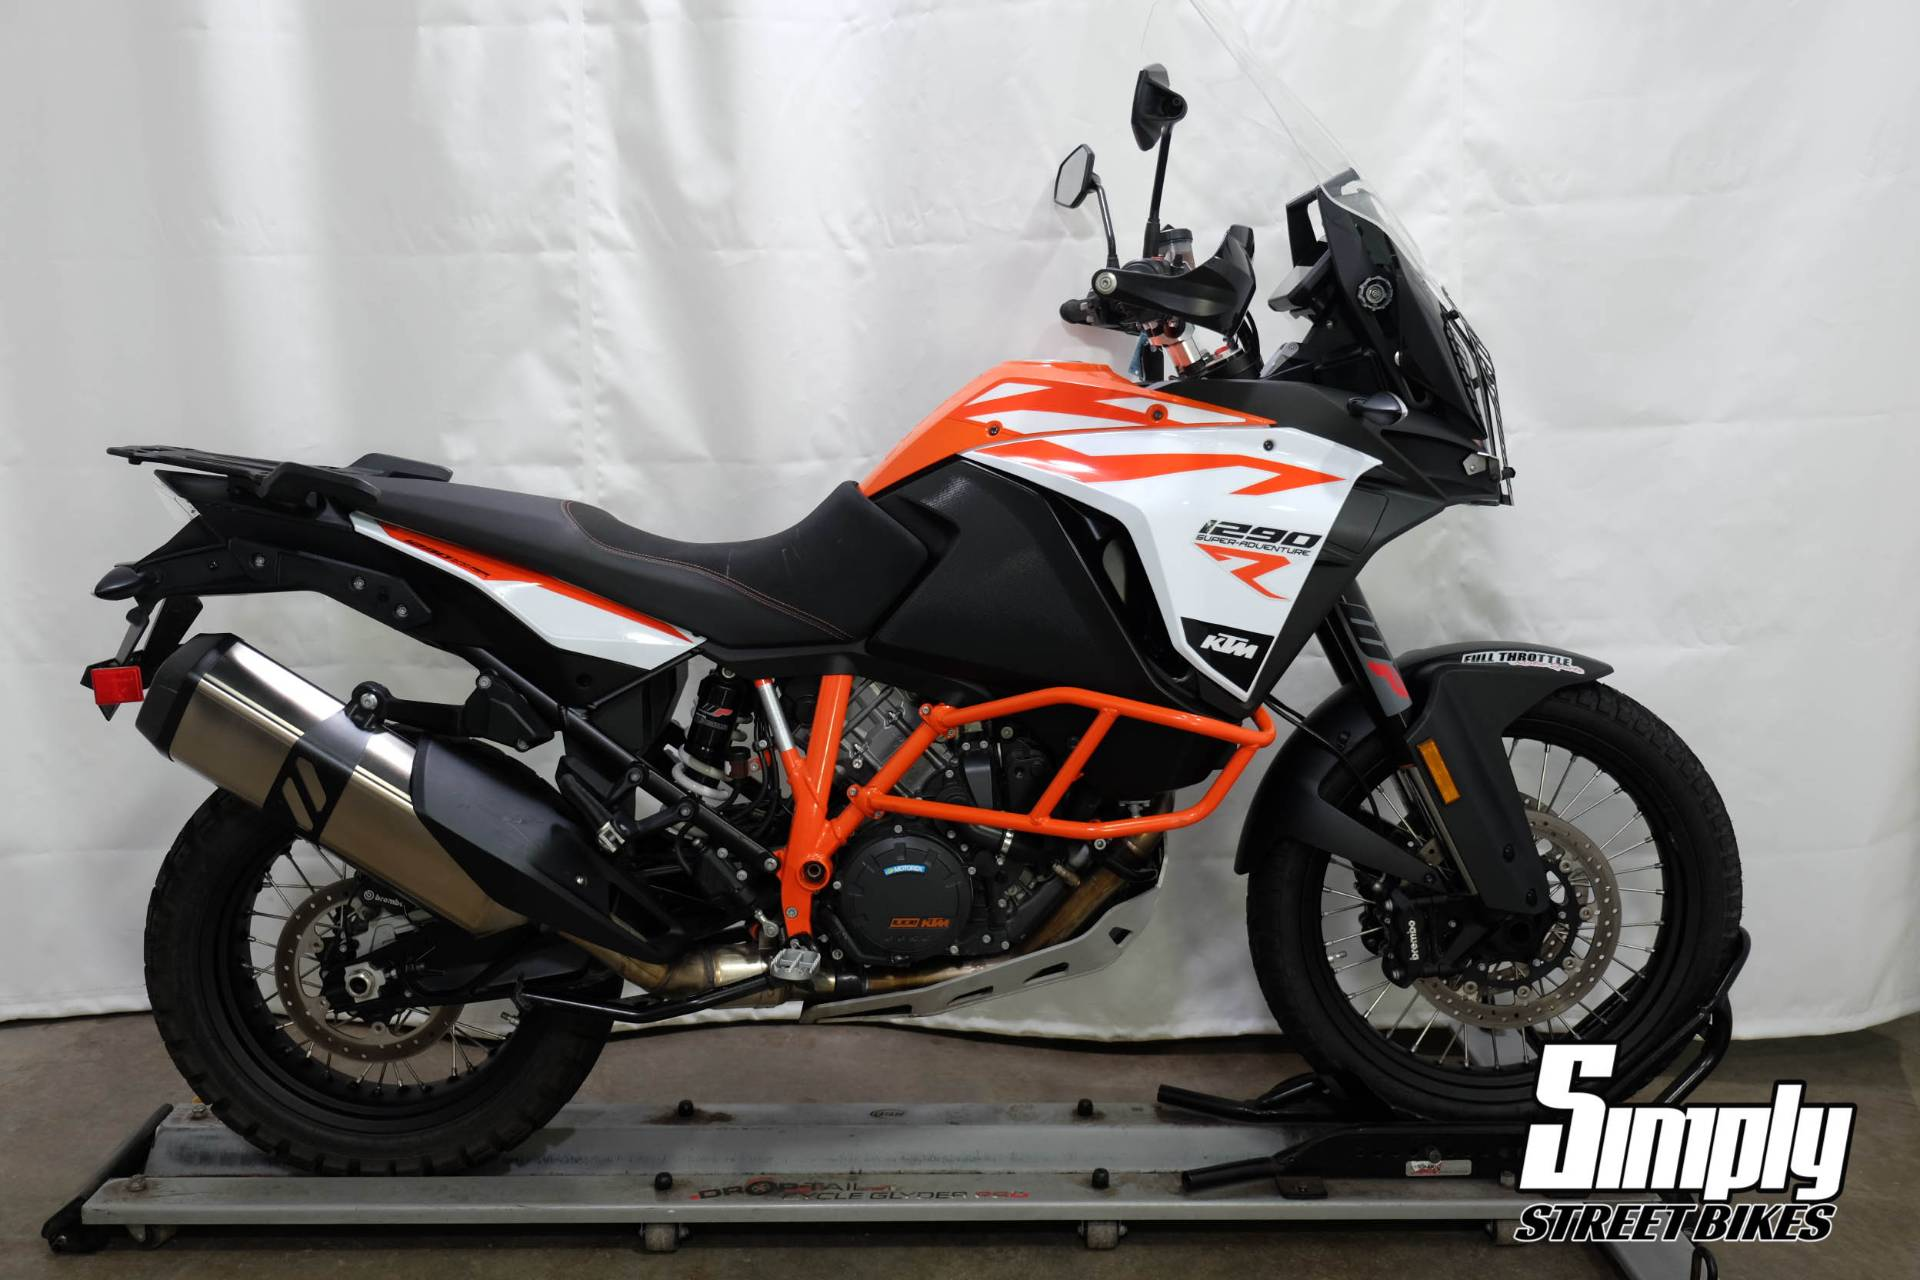 2018 Ktm 1290 Super Adventure R Used Motorcycle For Sale Eden Prairie Mn Simply Ride